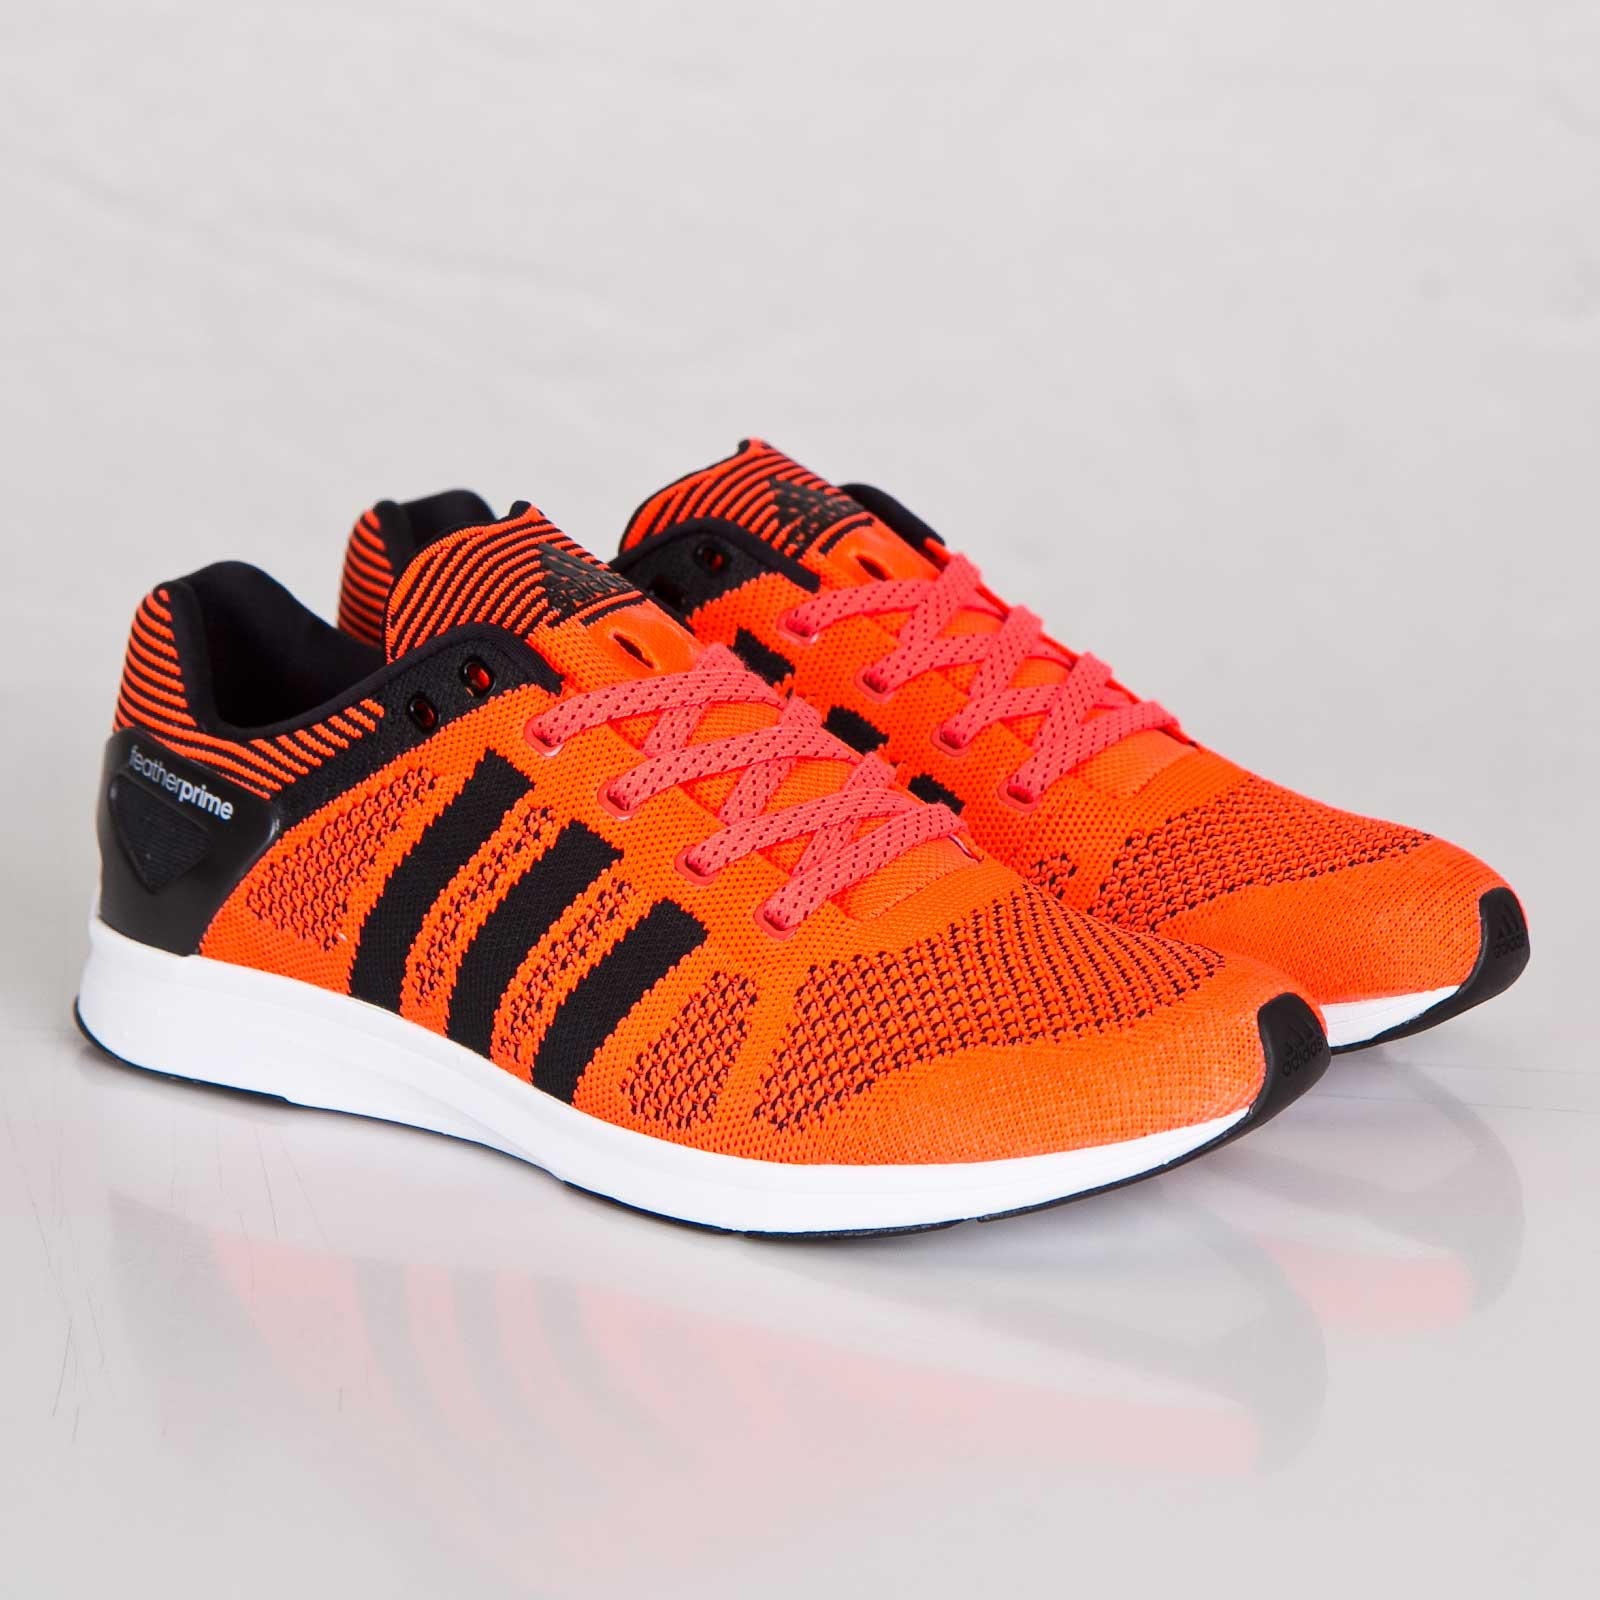 adidas adizero feather prime M M21200 Sneakersnstuff